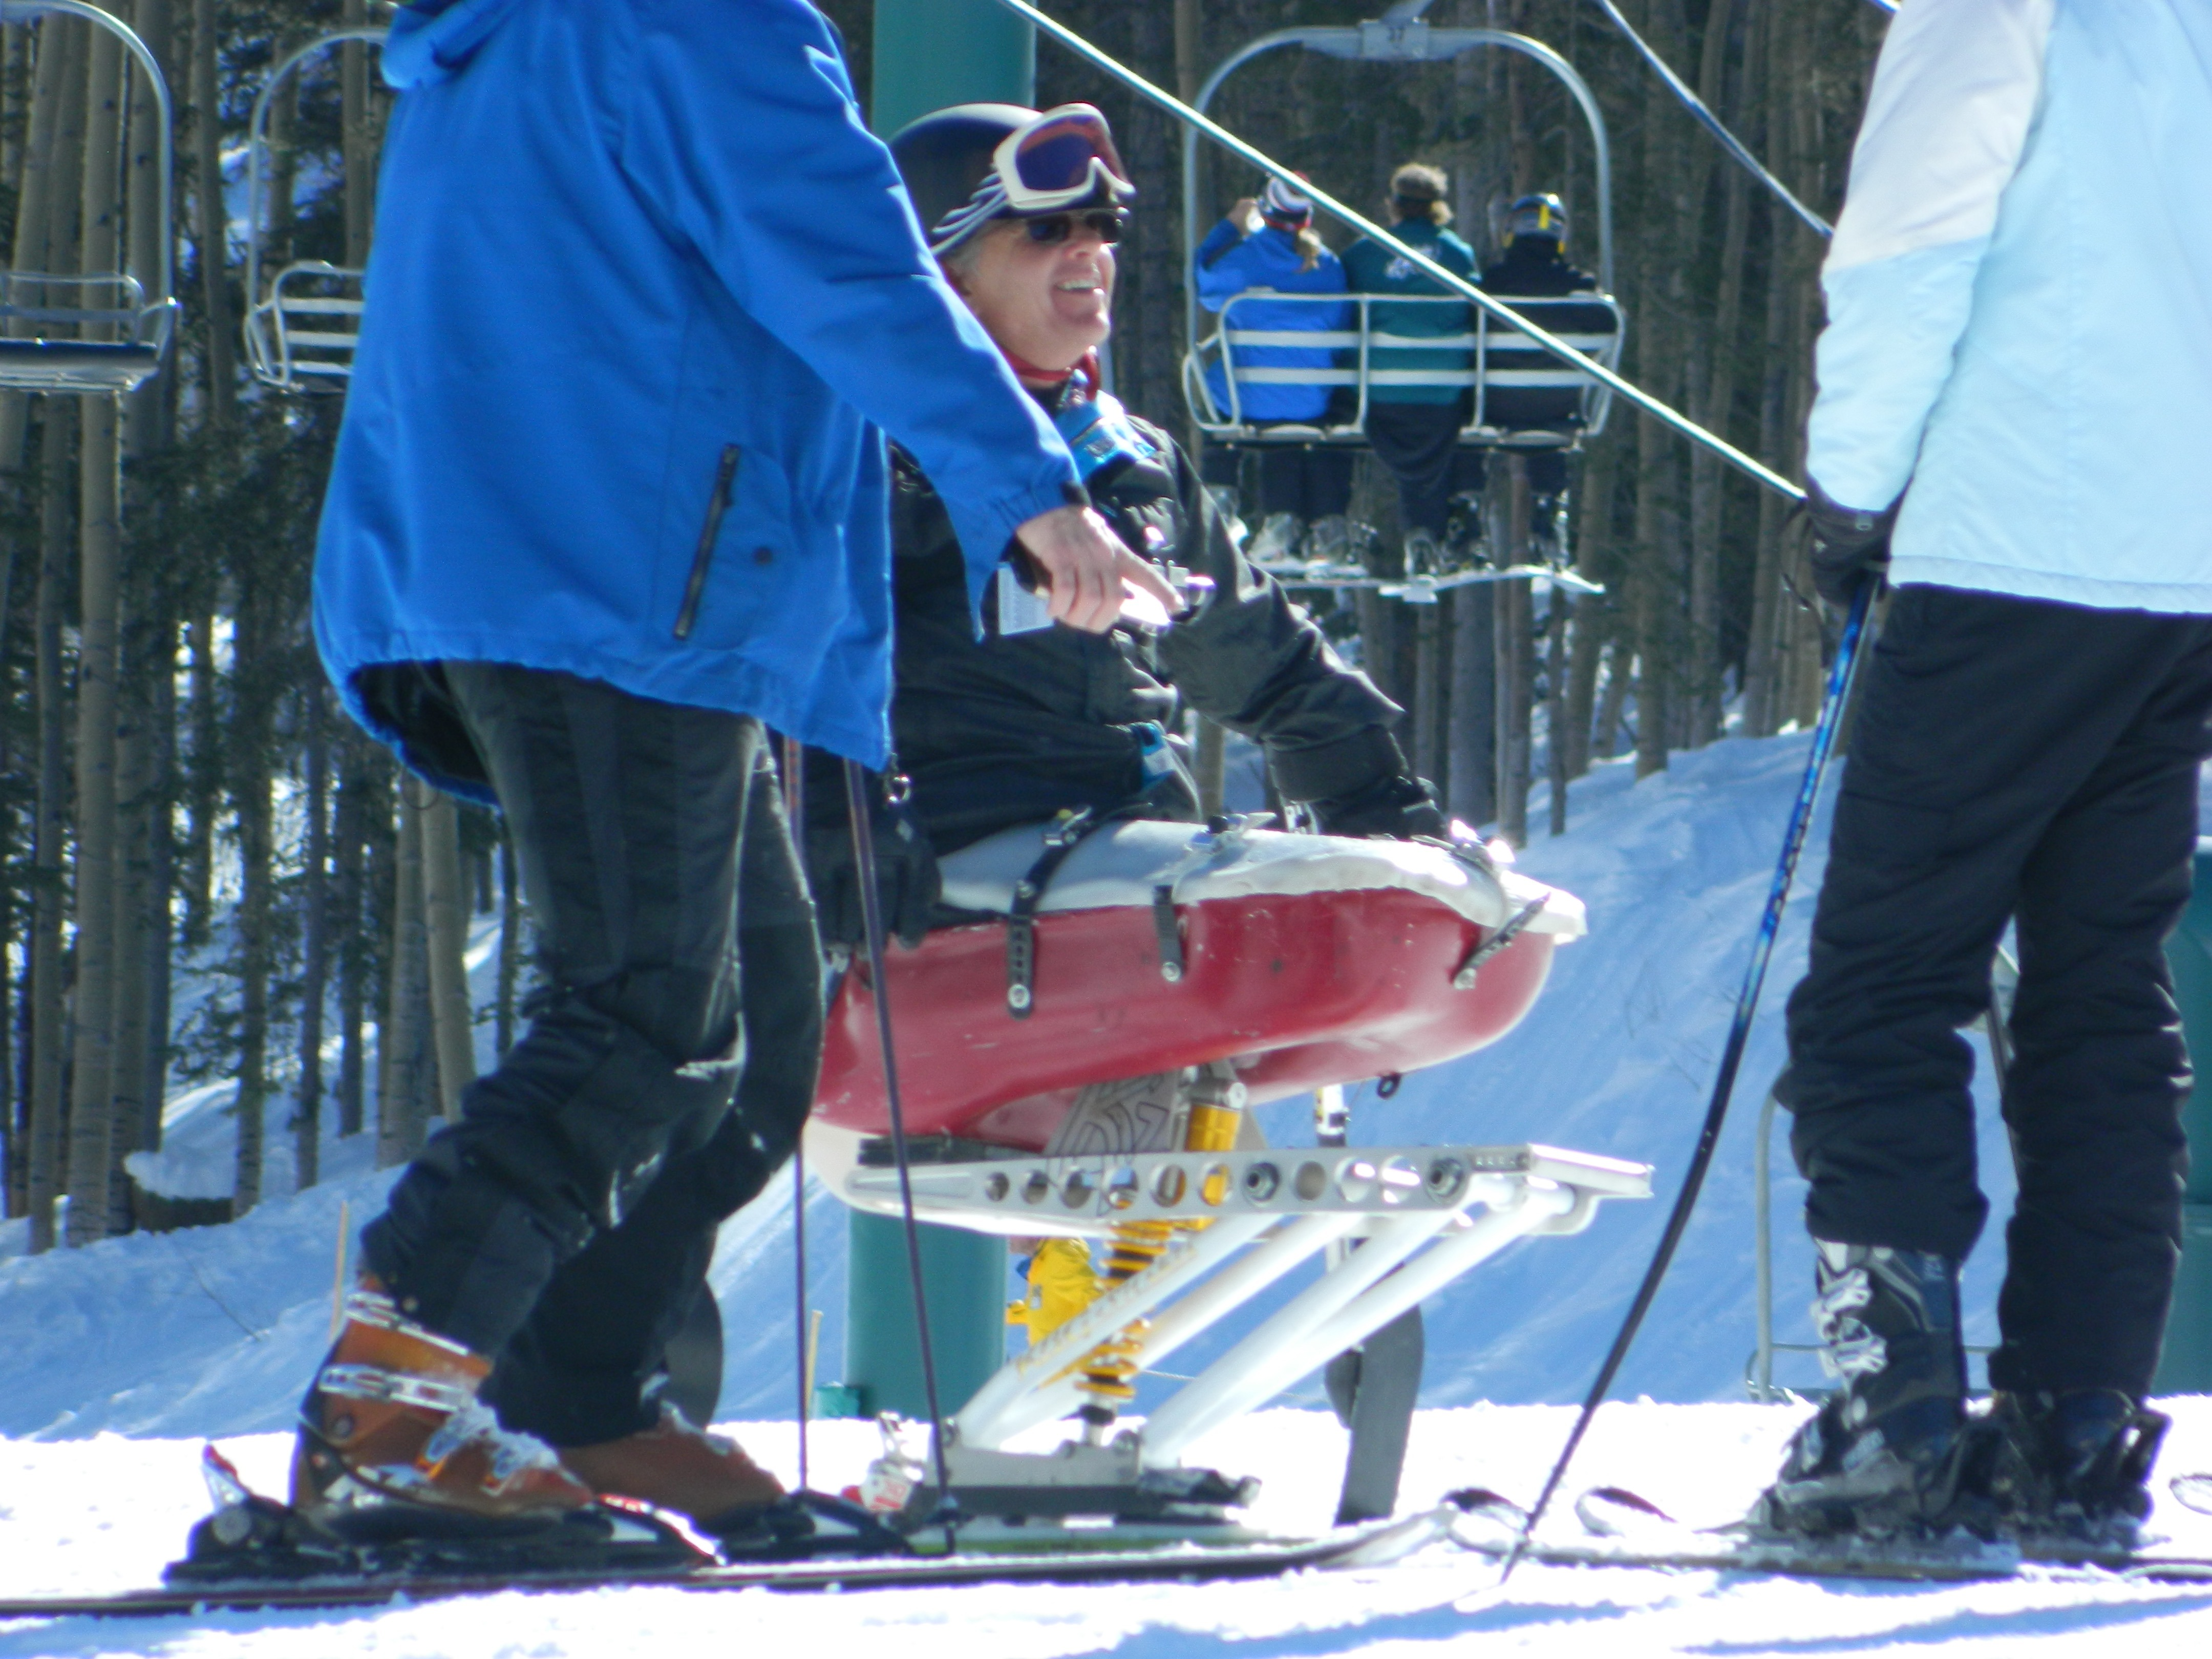 Cheerful disabled skier in red ski chair chats with two other skiers. Chairlift and wintry forest behind.